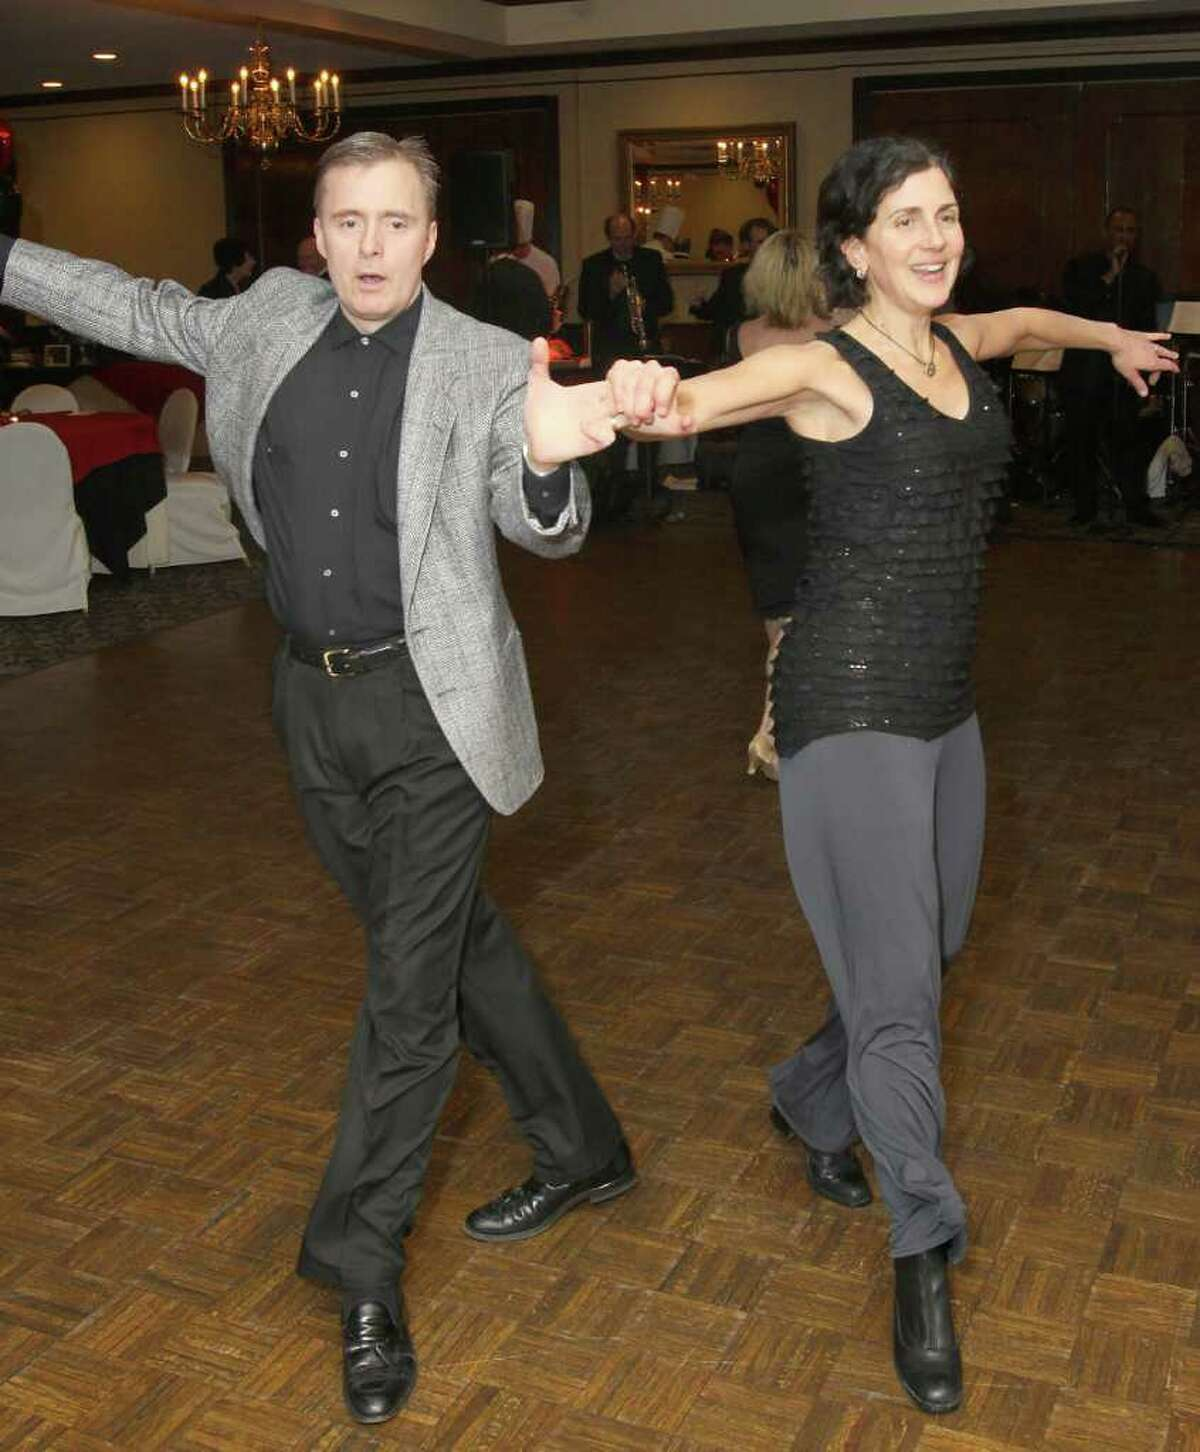 Bill and Suzanne Baetz work the dance floor. (Joe Putrock / Special to the Times Union)